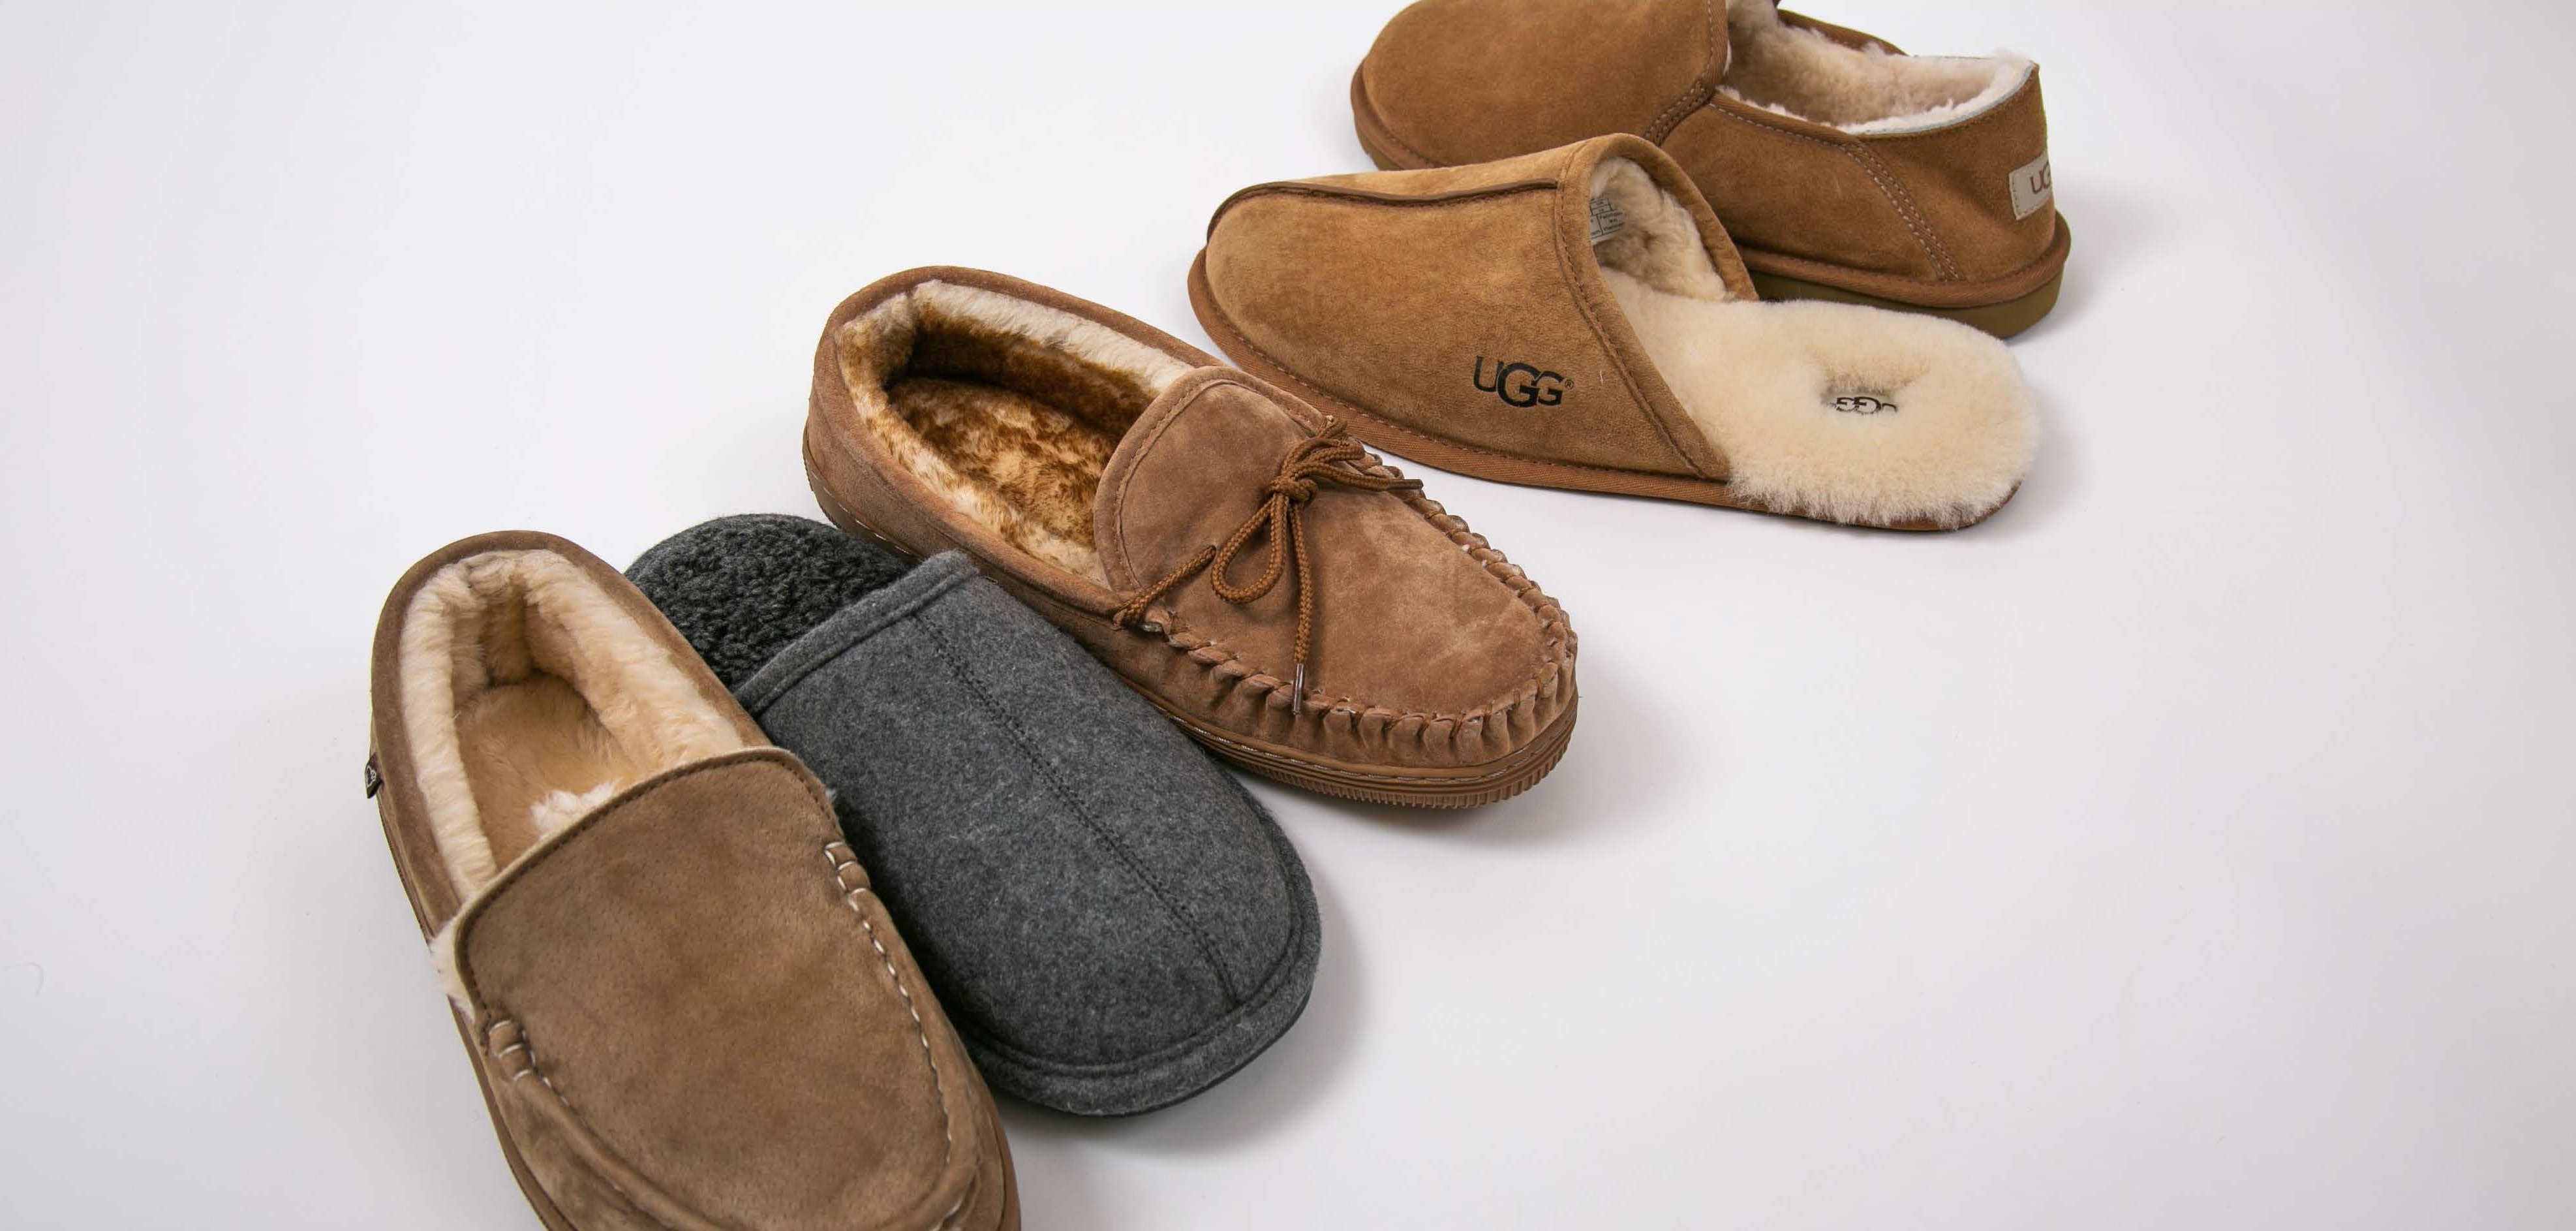 Men's Ugg and Lamo Slippers